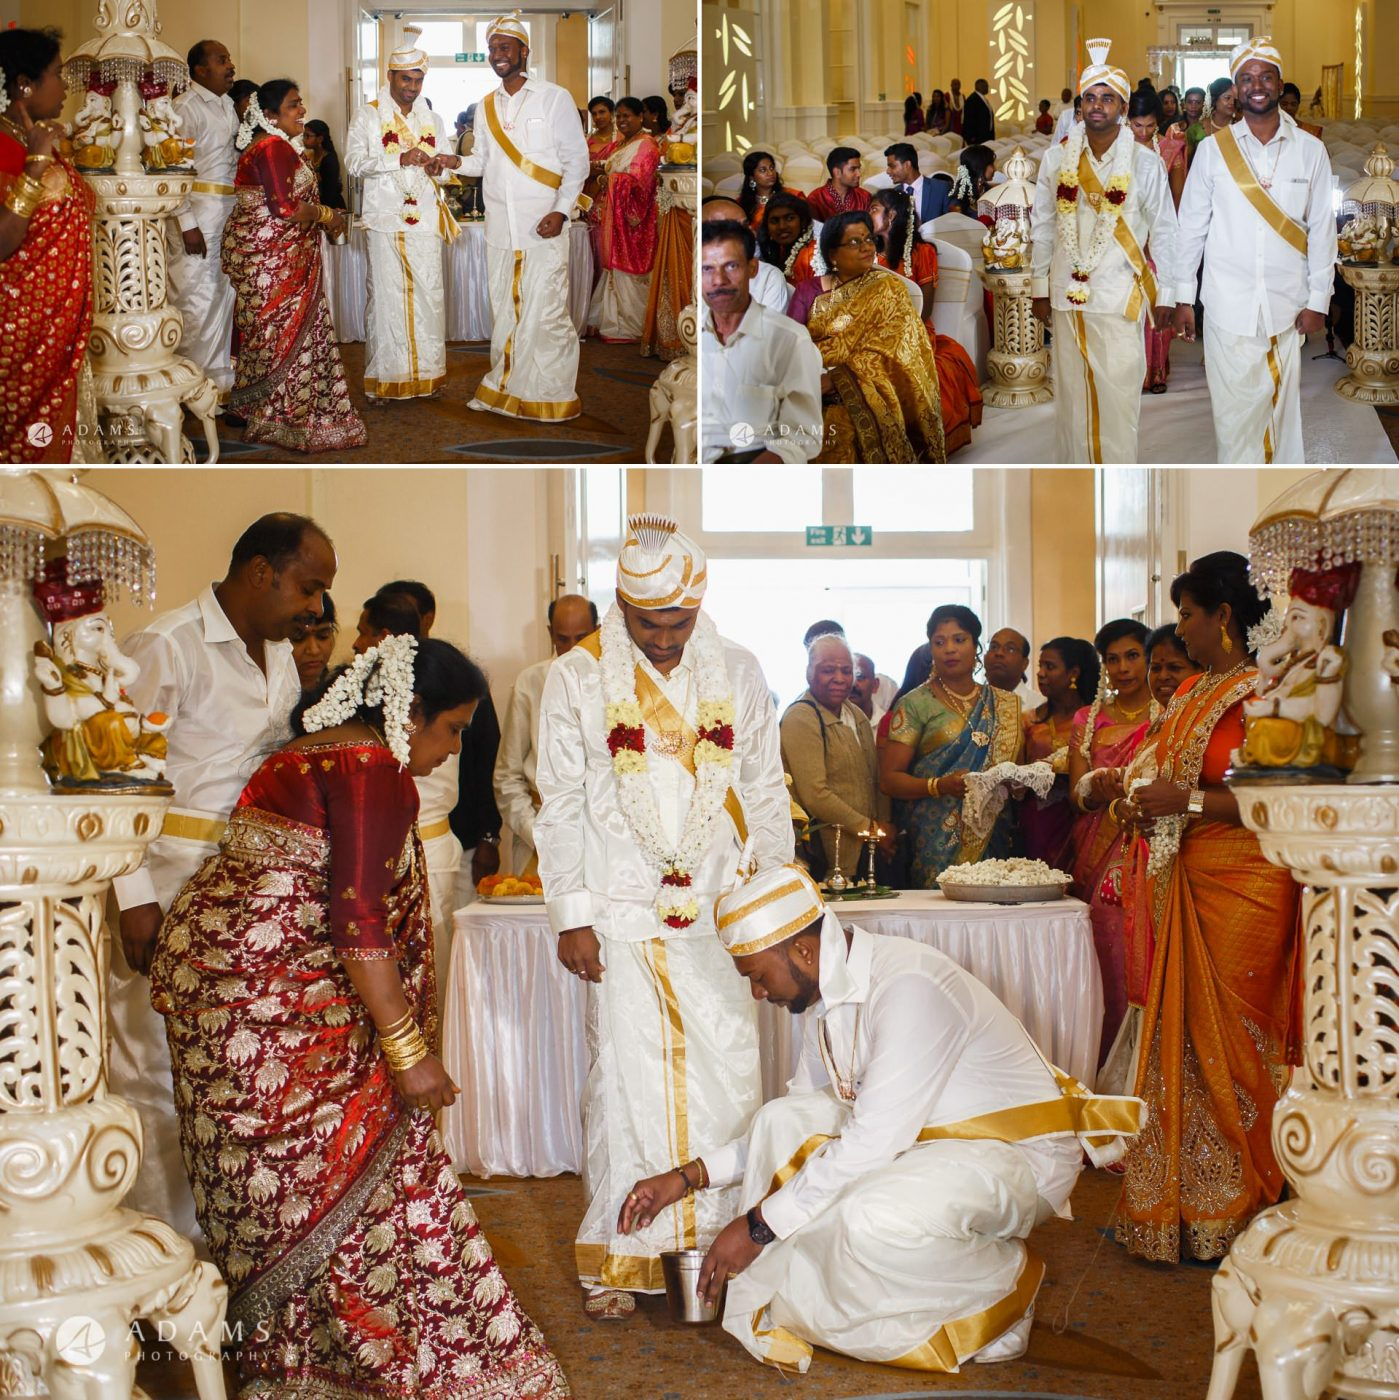 people on the traditional tamil wedding ceremony taking place in london city